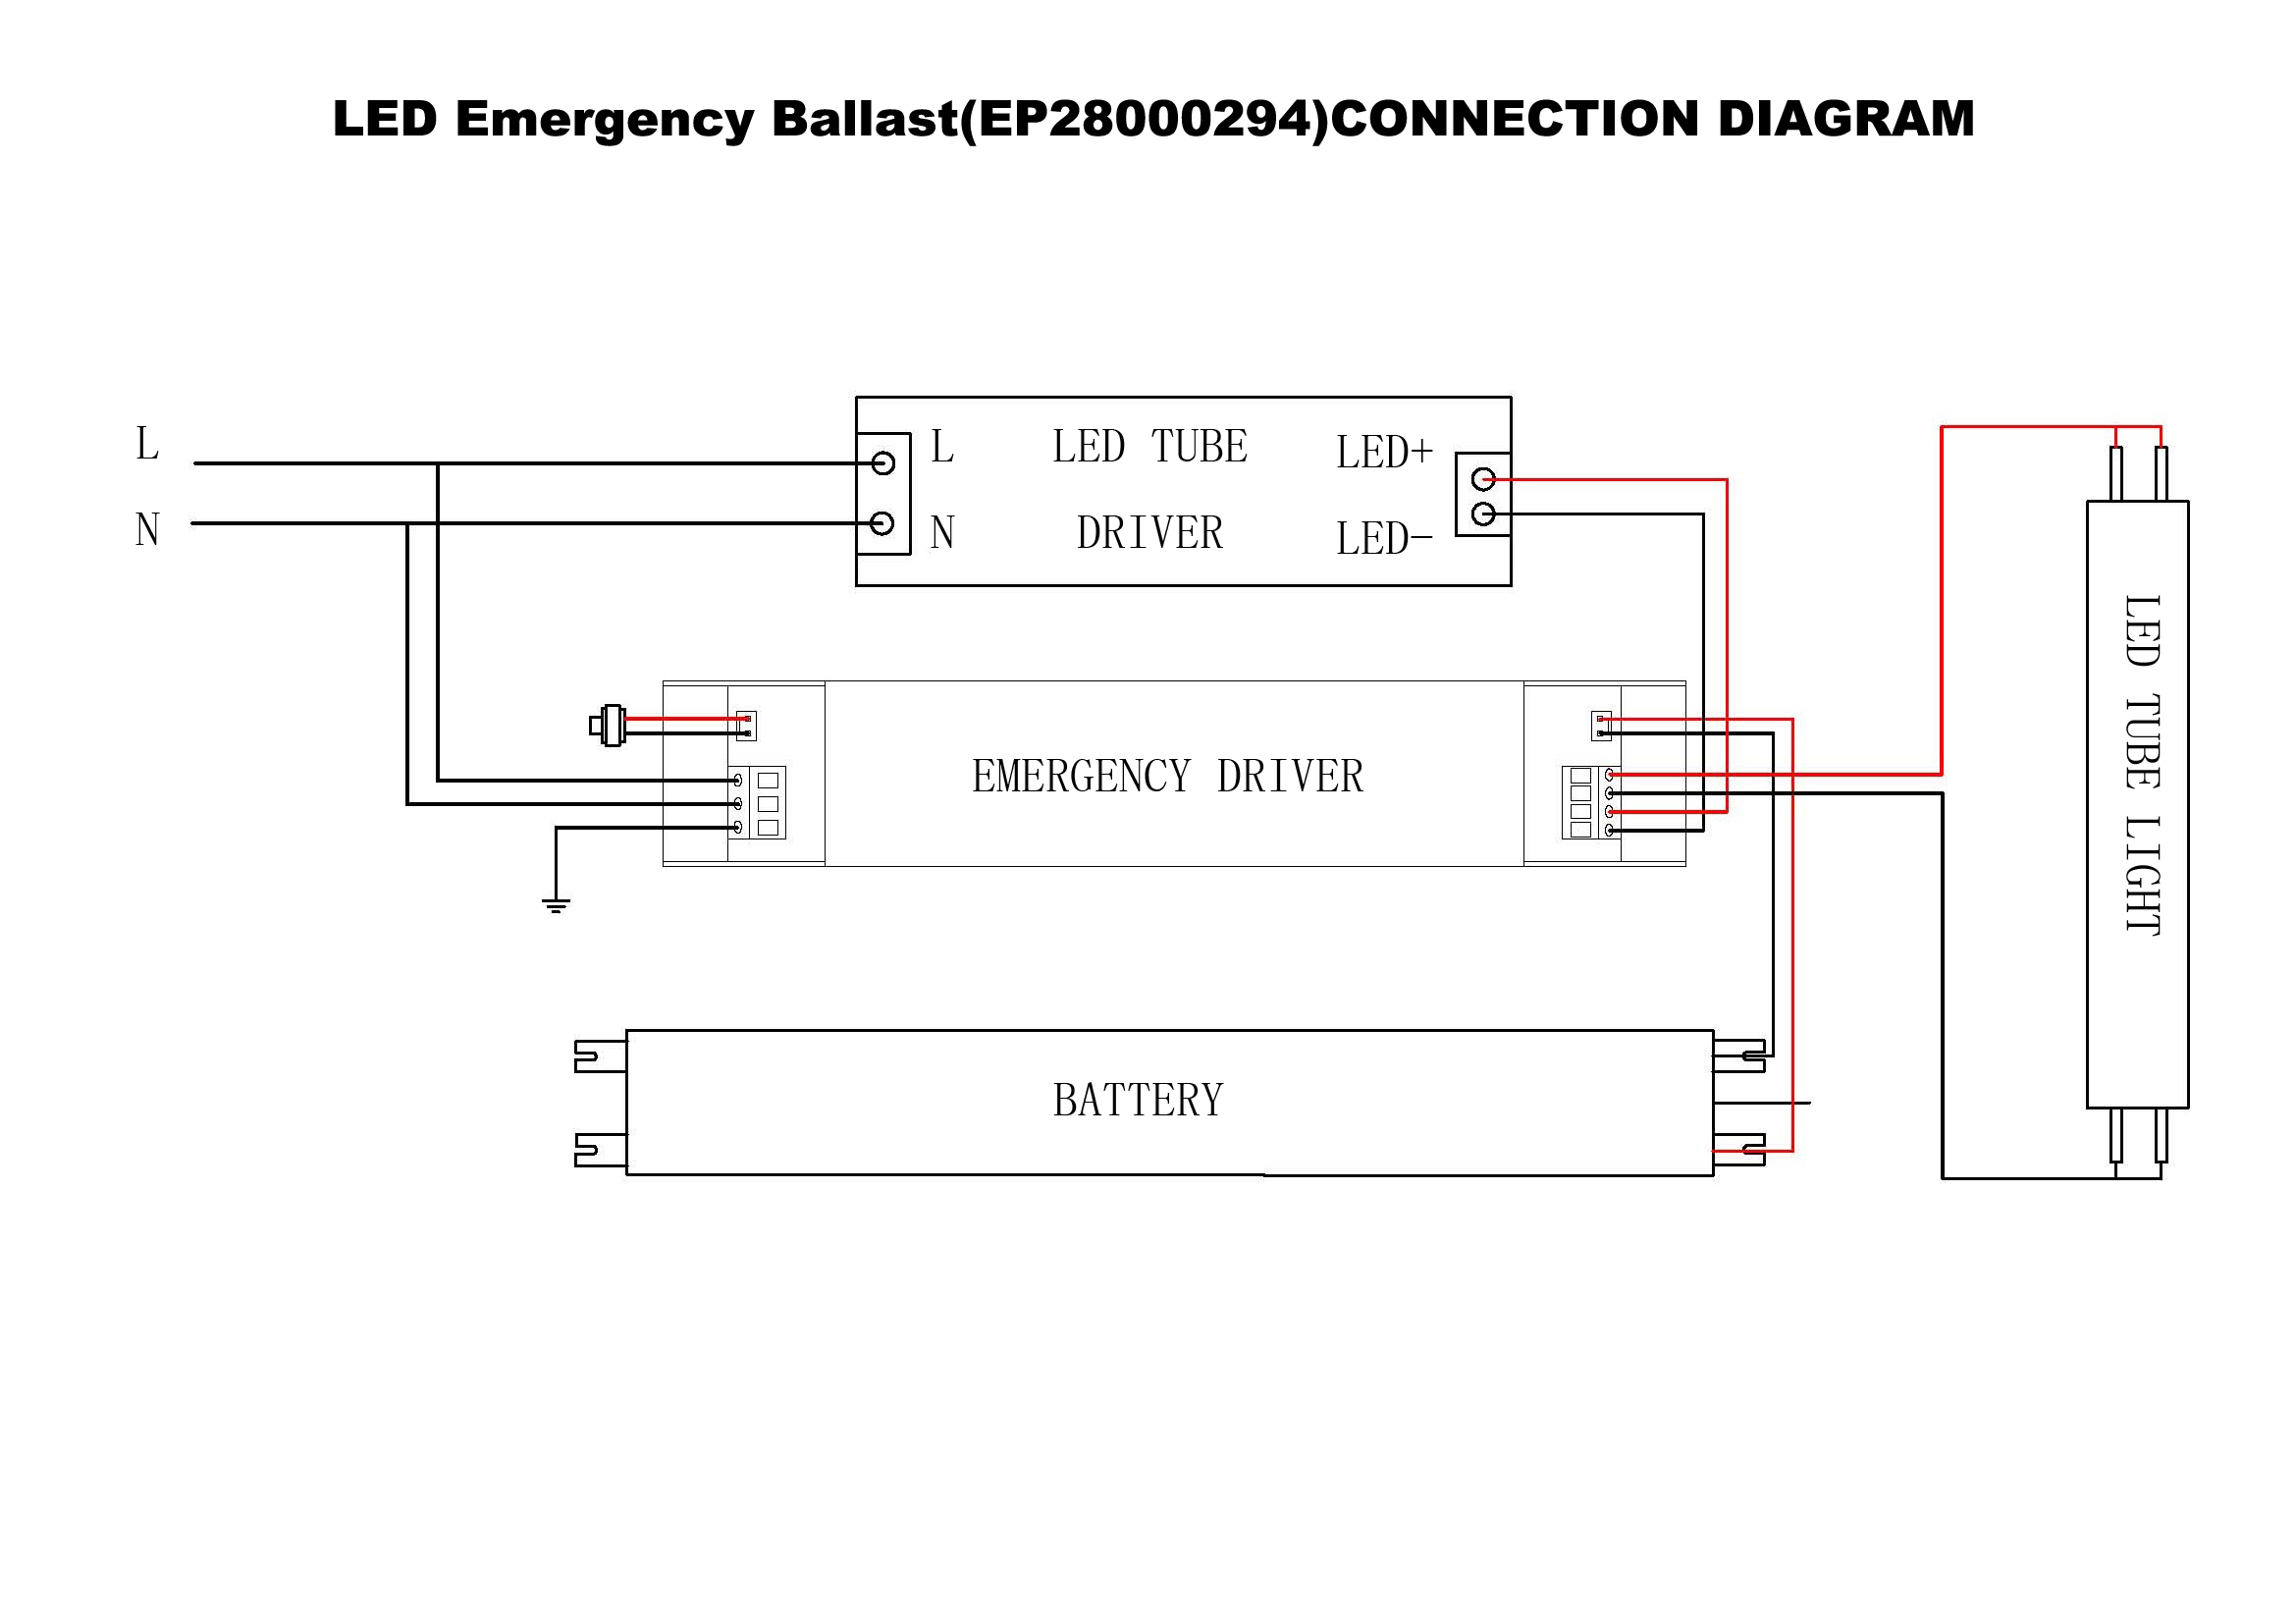 Led Emergency Ballast Wiring Diagram Expert Schematics For Fluorescent Light Datasheet Sunwind Lighting Company Ltd Triad